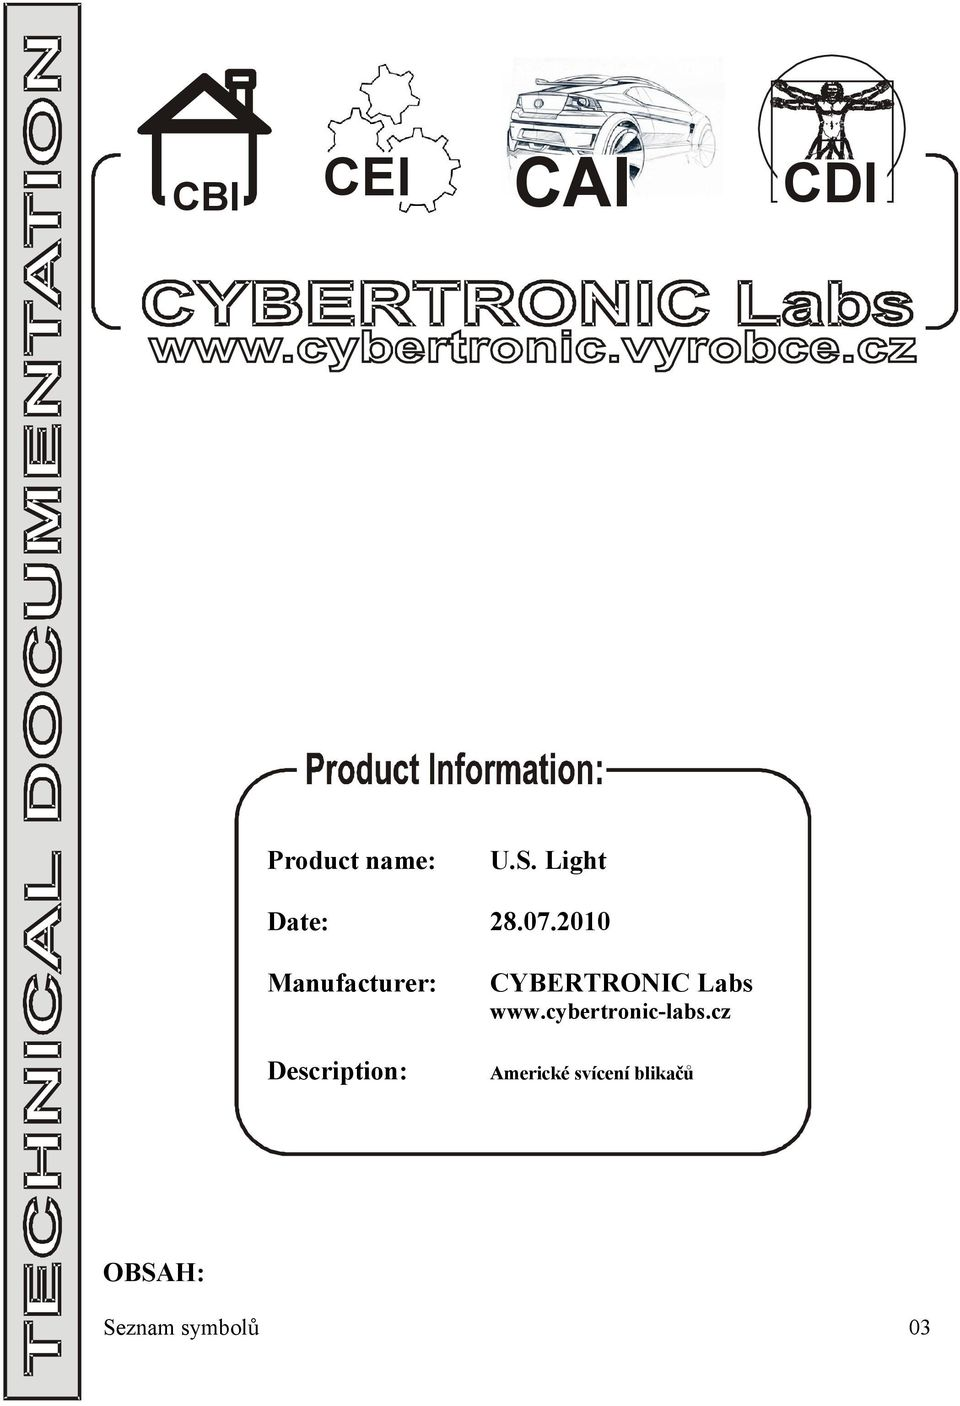 2010 Manufacturer: Description: CYBERTRONIC